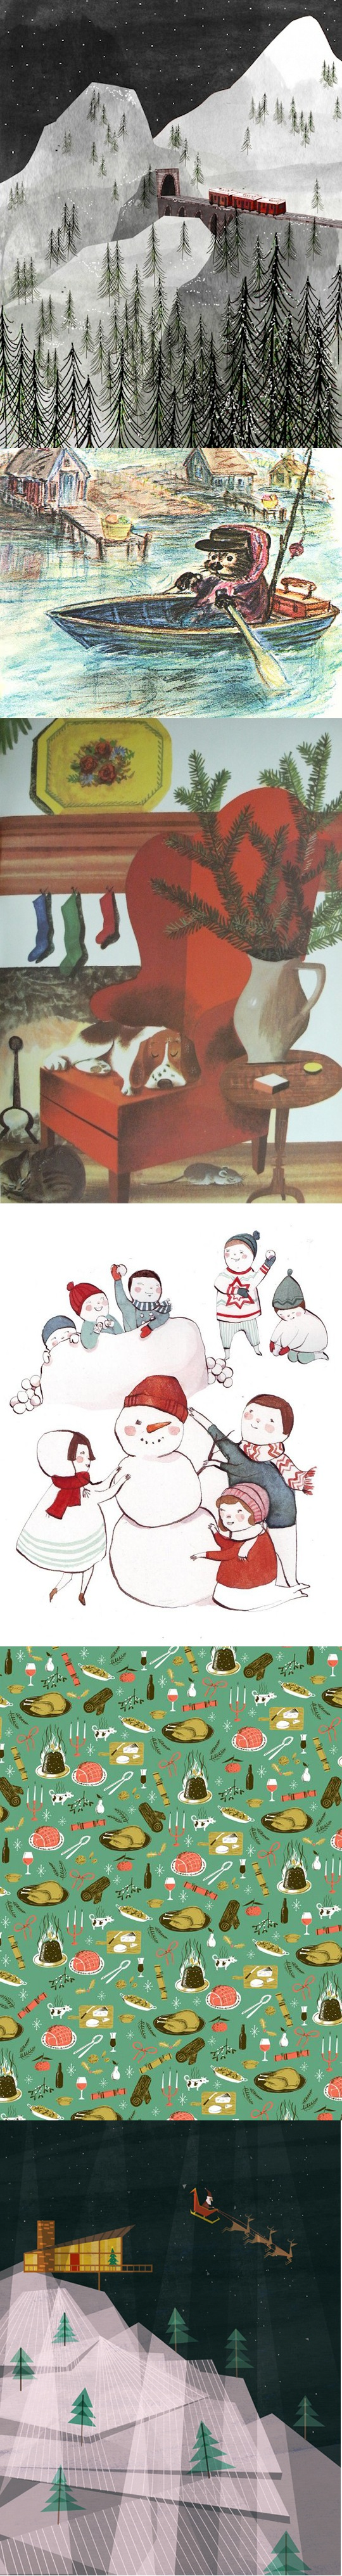 Favorite Holiday illustration curation by Red Cap Cards